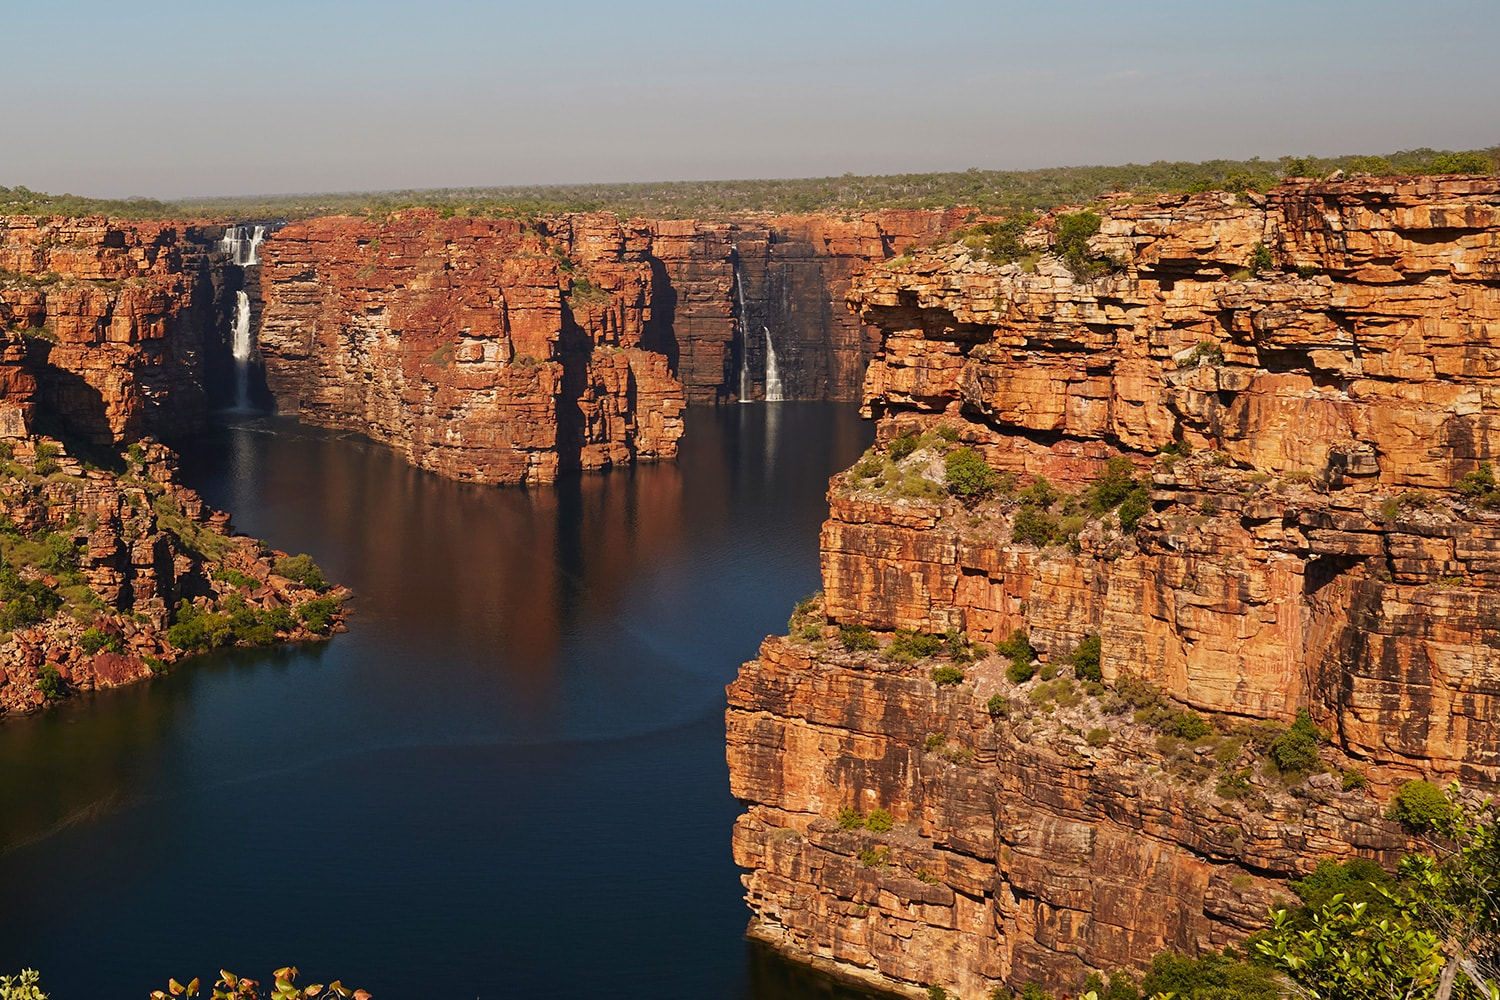 #AliceSprings - #Tourism Guide #Australia Outback #travel #FrizeMedia